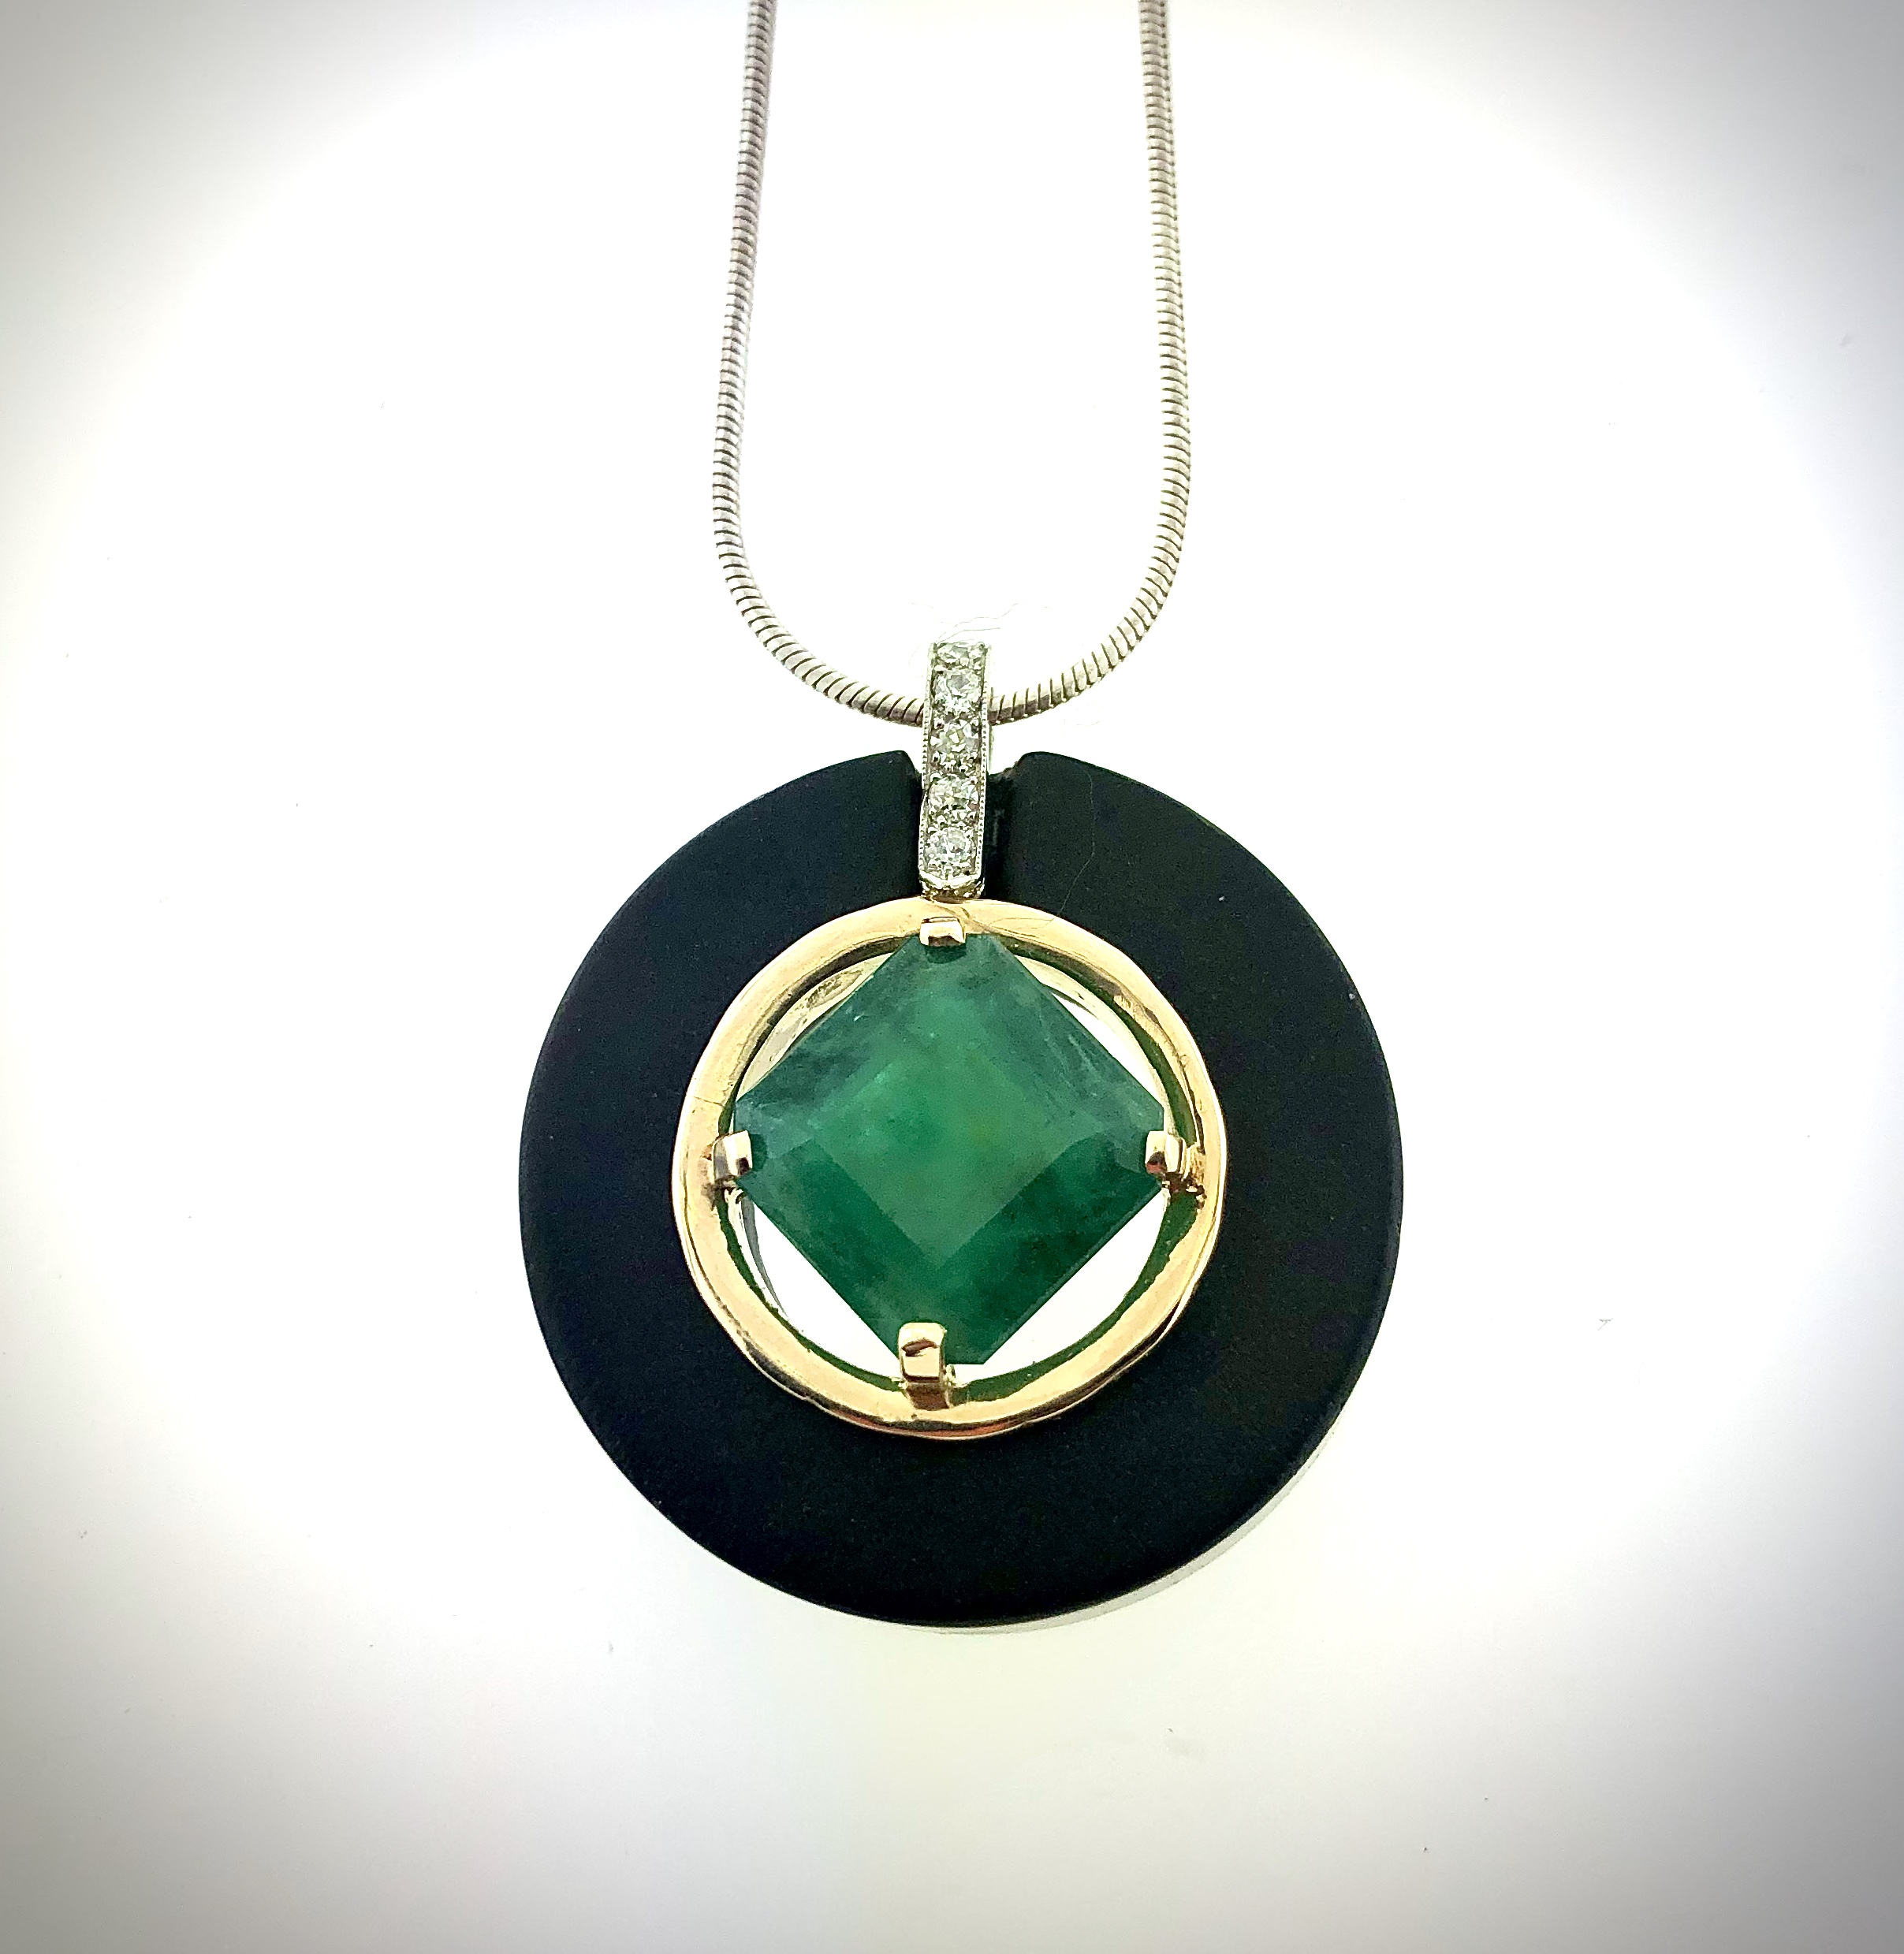 A green and black pendant of on a necklace